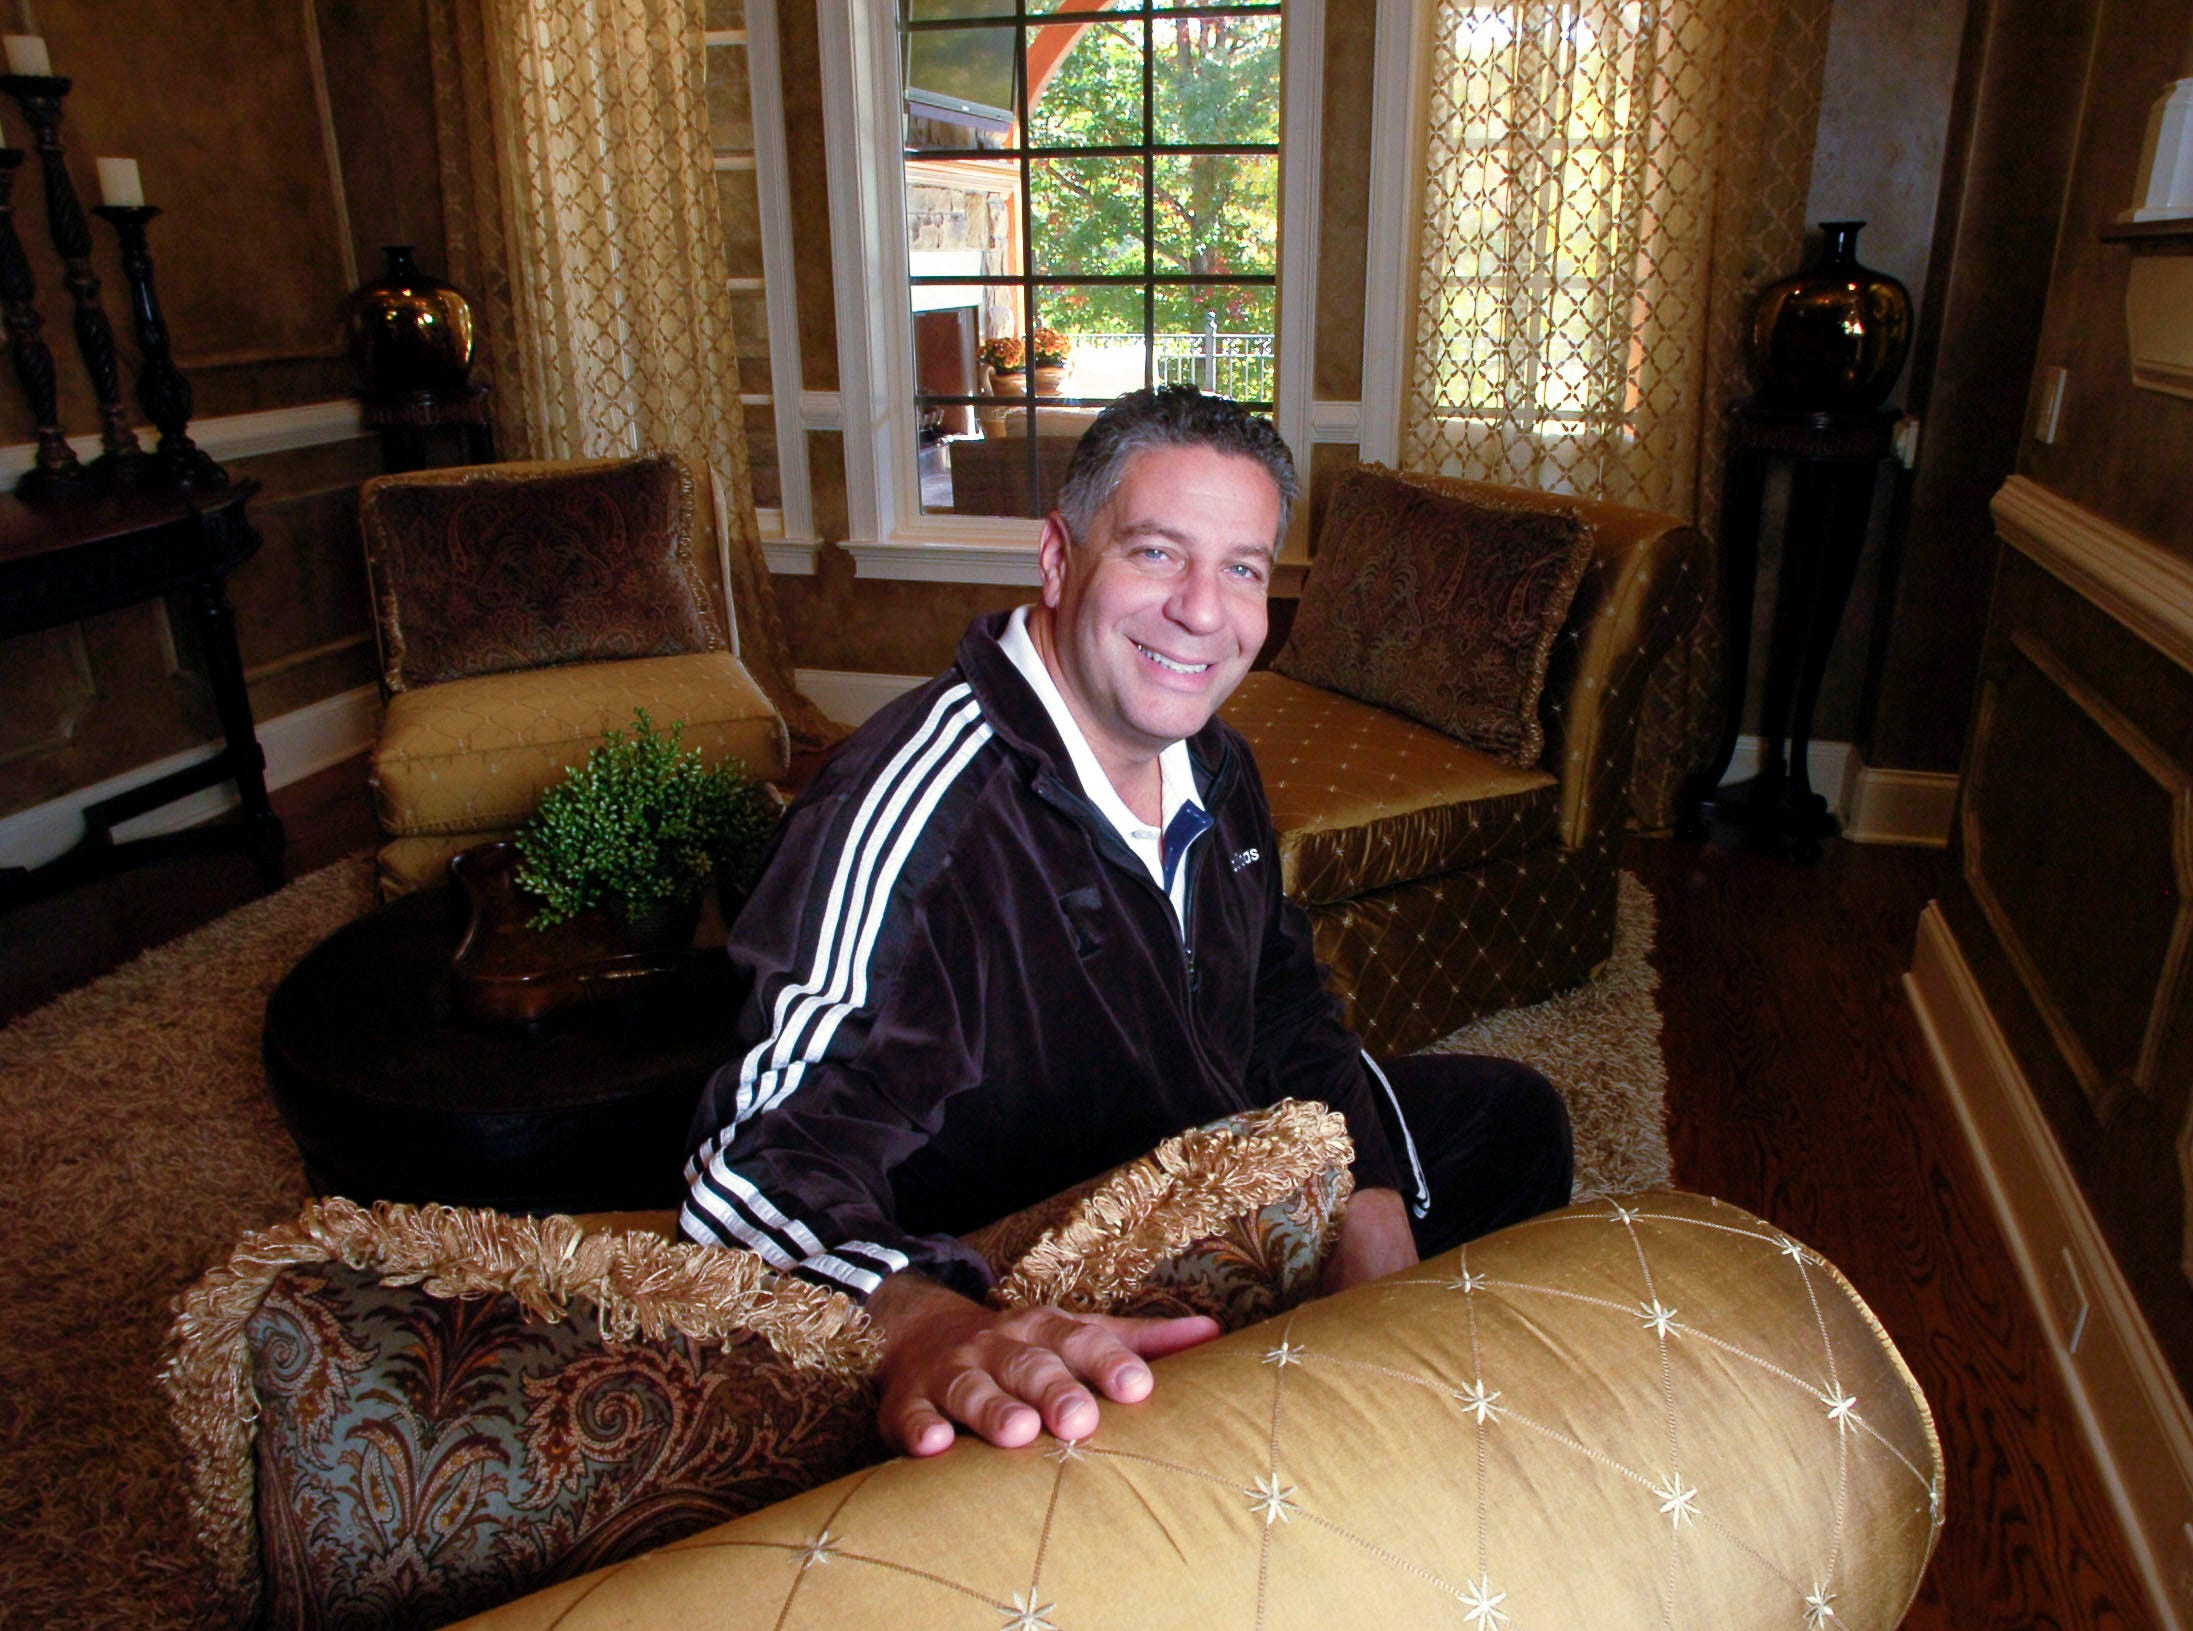 University of Tennessee basketball coach Bruce Pearlsits in the formal living room of his first home in Gettysvue in 2008.